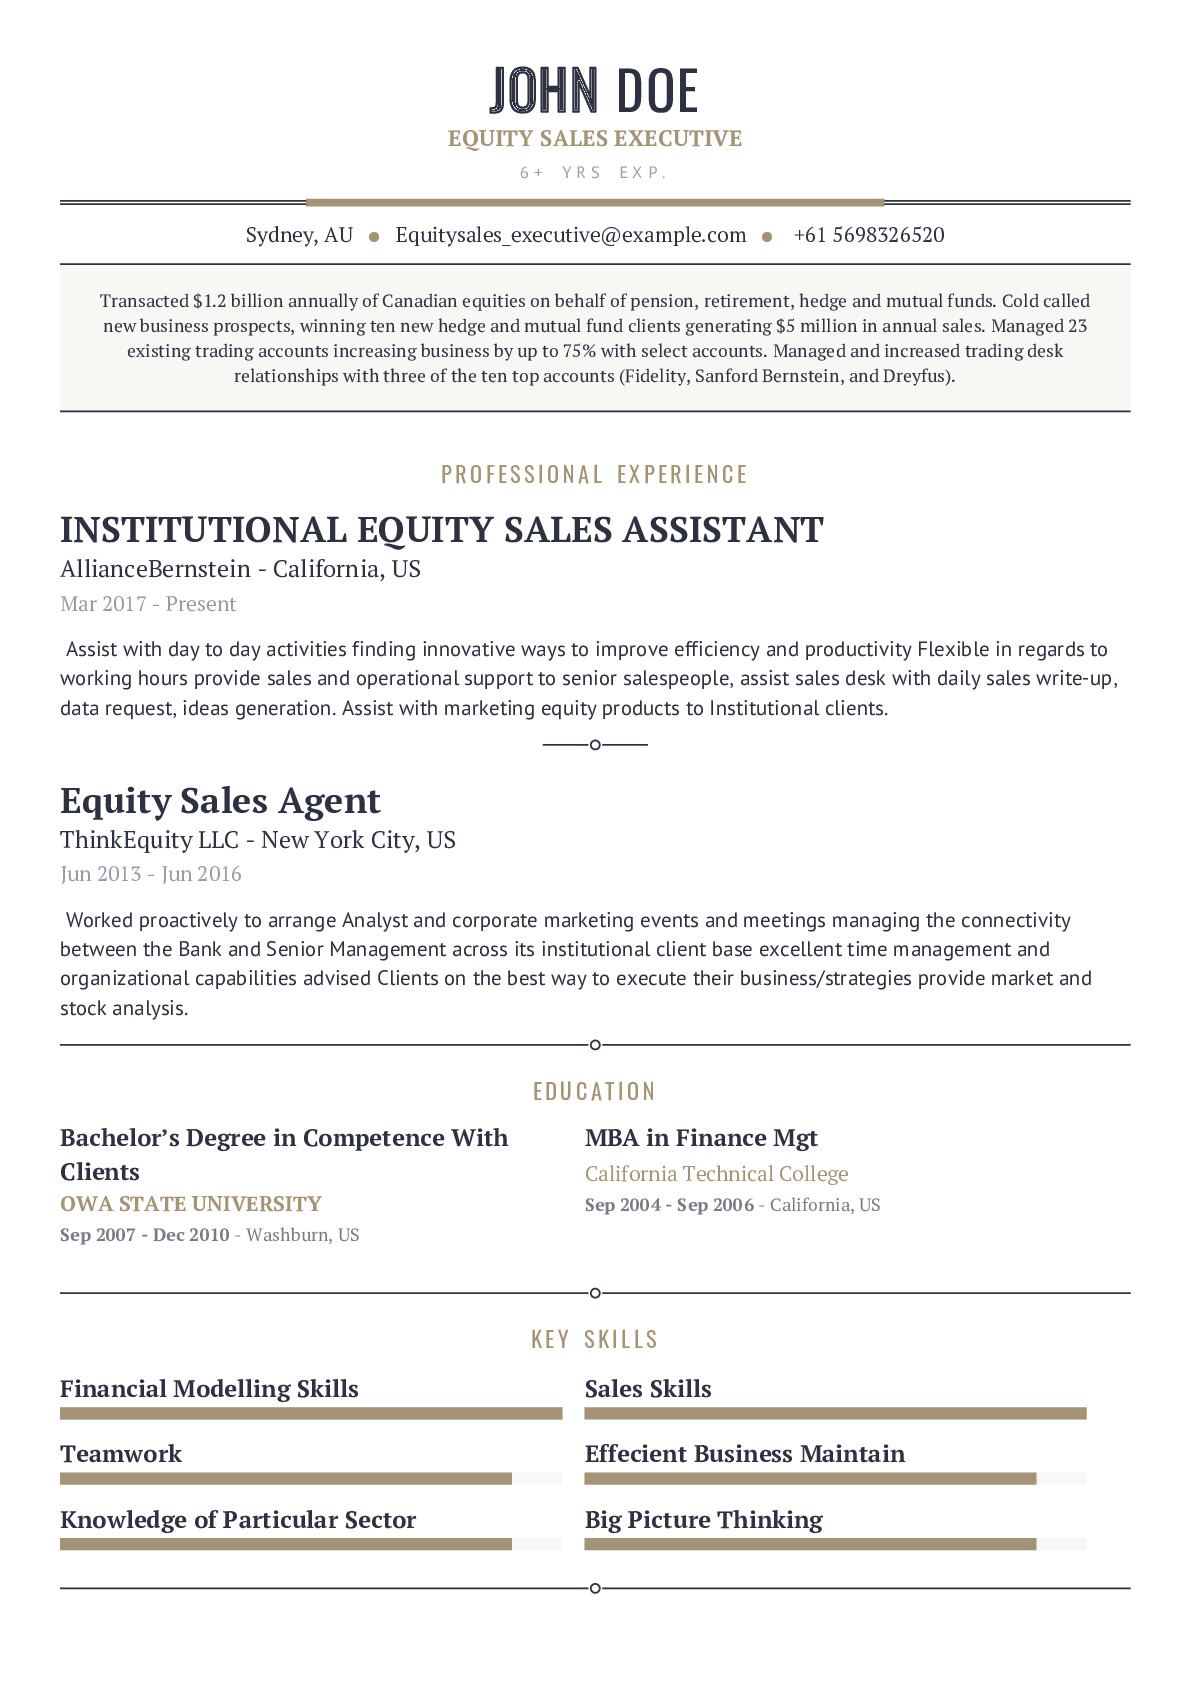 Equity Sales Executive Resume Example